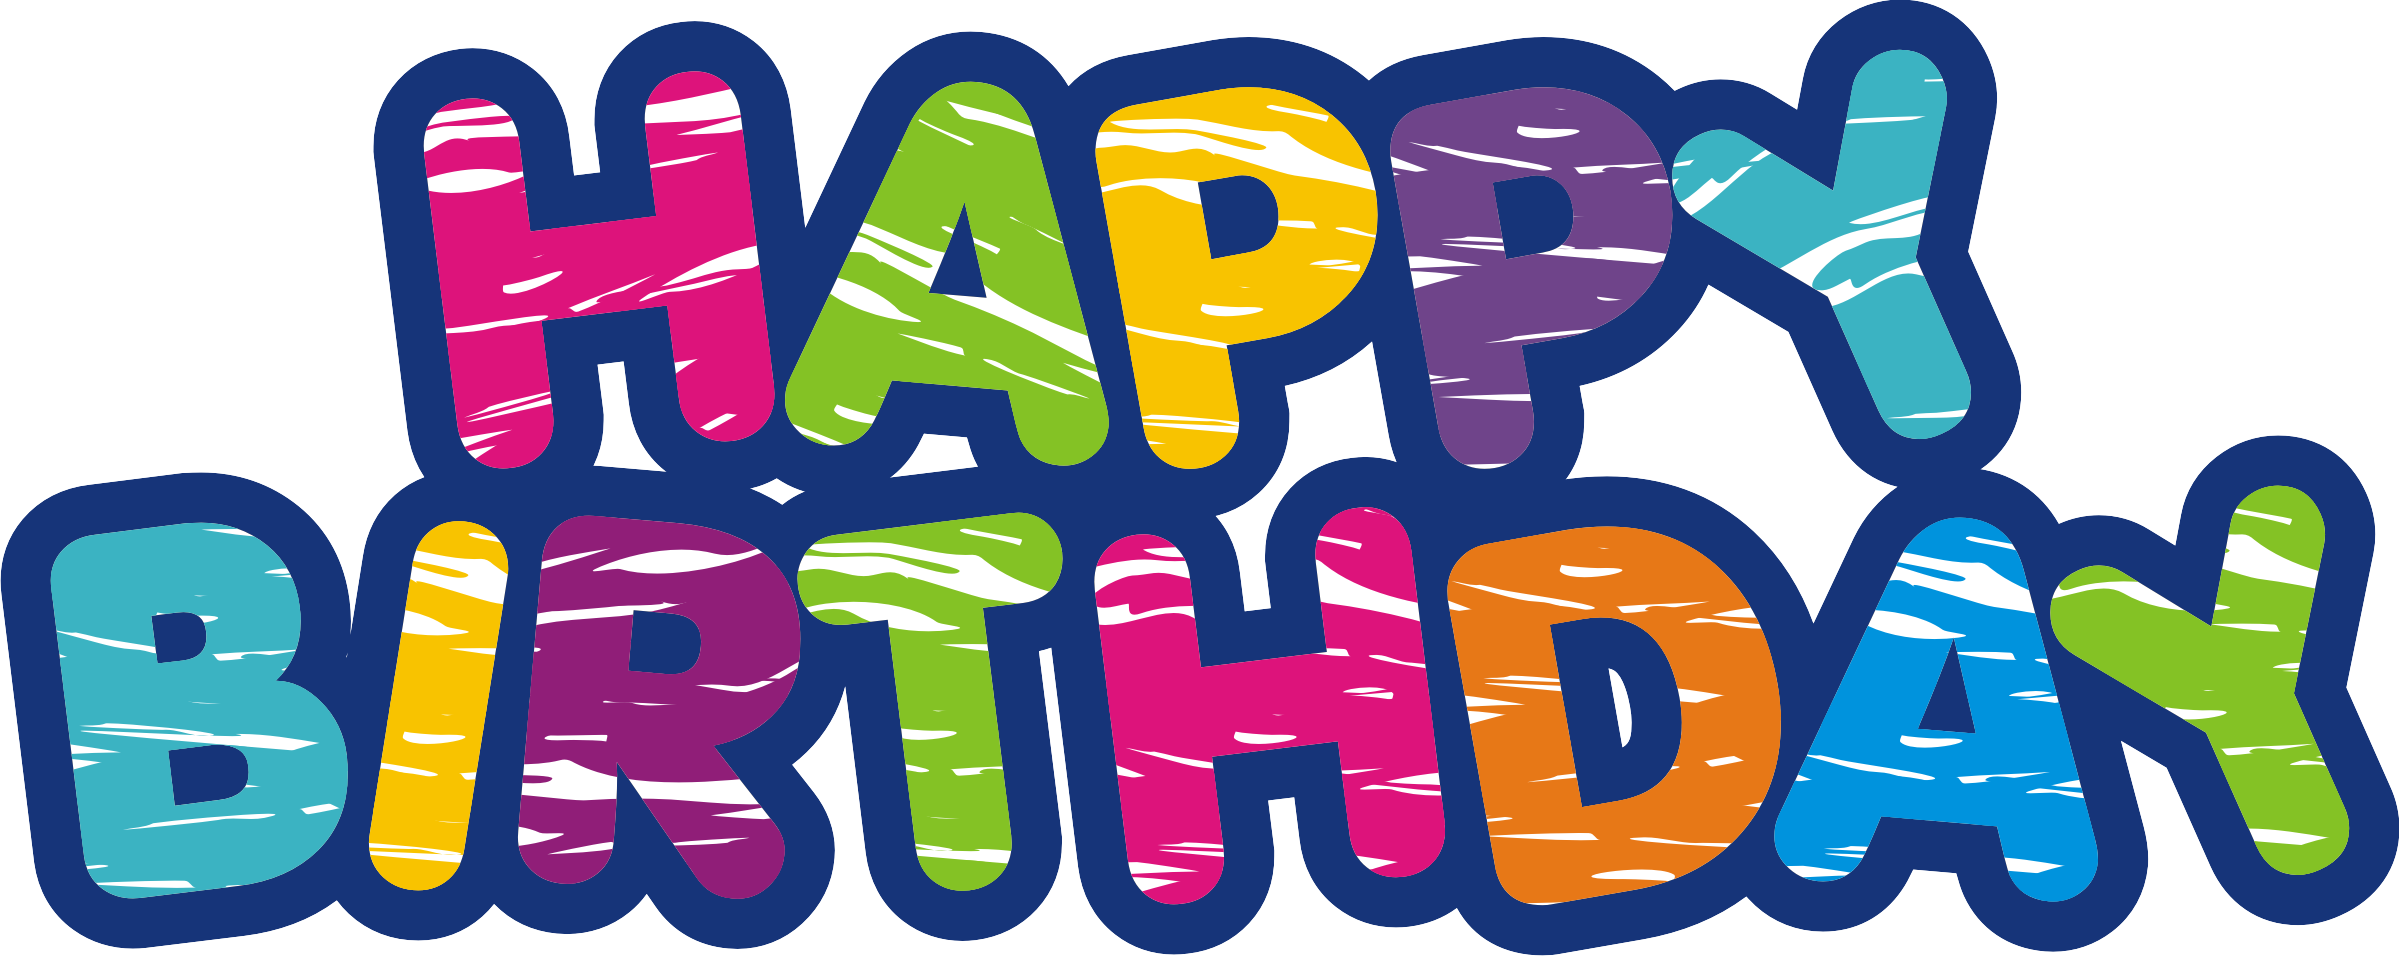 Happy birthday png transparent. Picture web icons